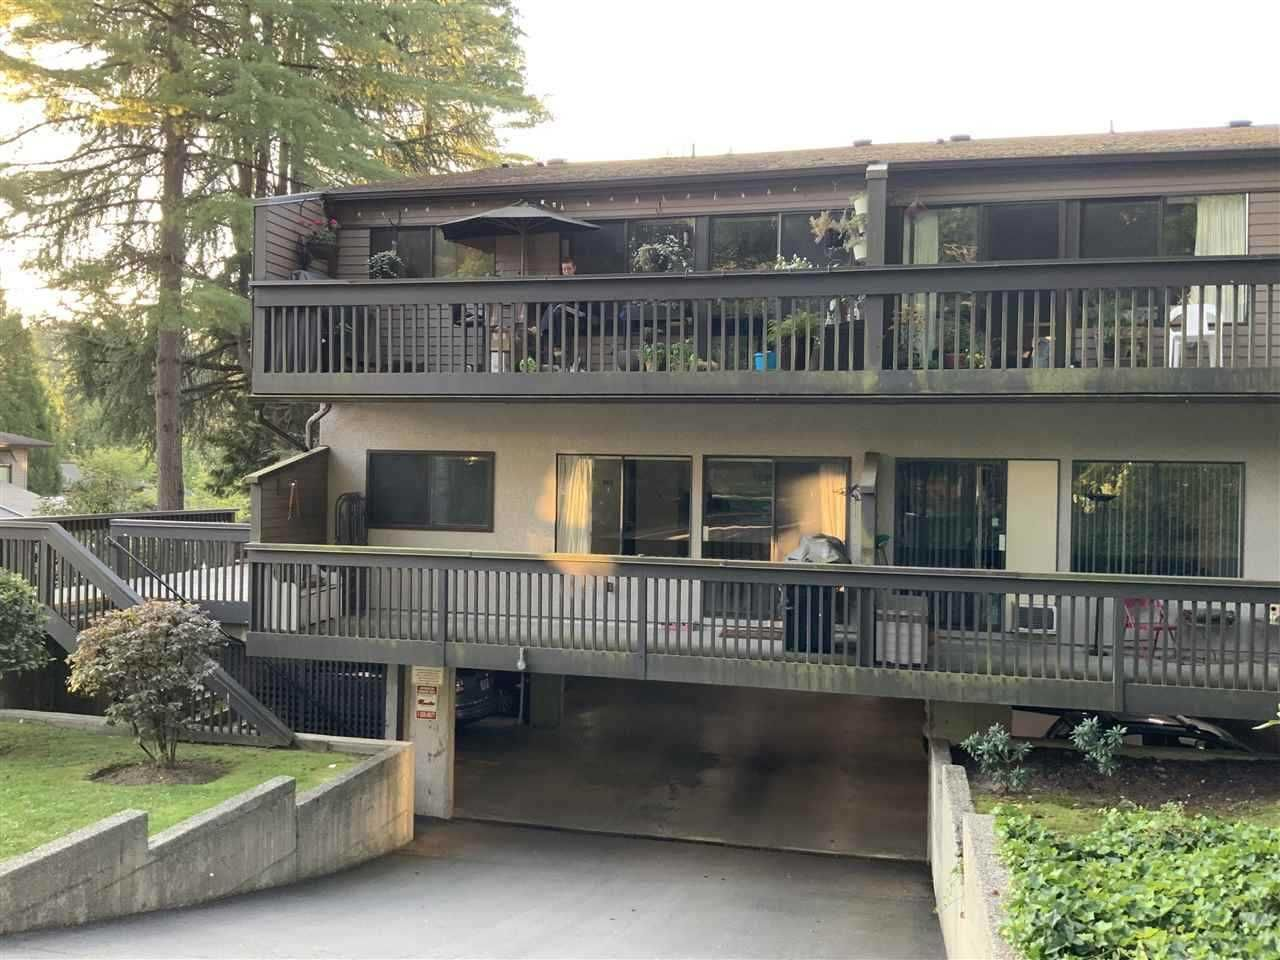 """Main Photo: 2933 ARGO Place in Burnaby: Simon Fraser Hills Condo for sale in """"SIMON FRASER HILLS"""" (Burnaby North)  : MLS®# R2503468"""